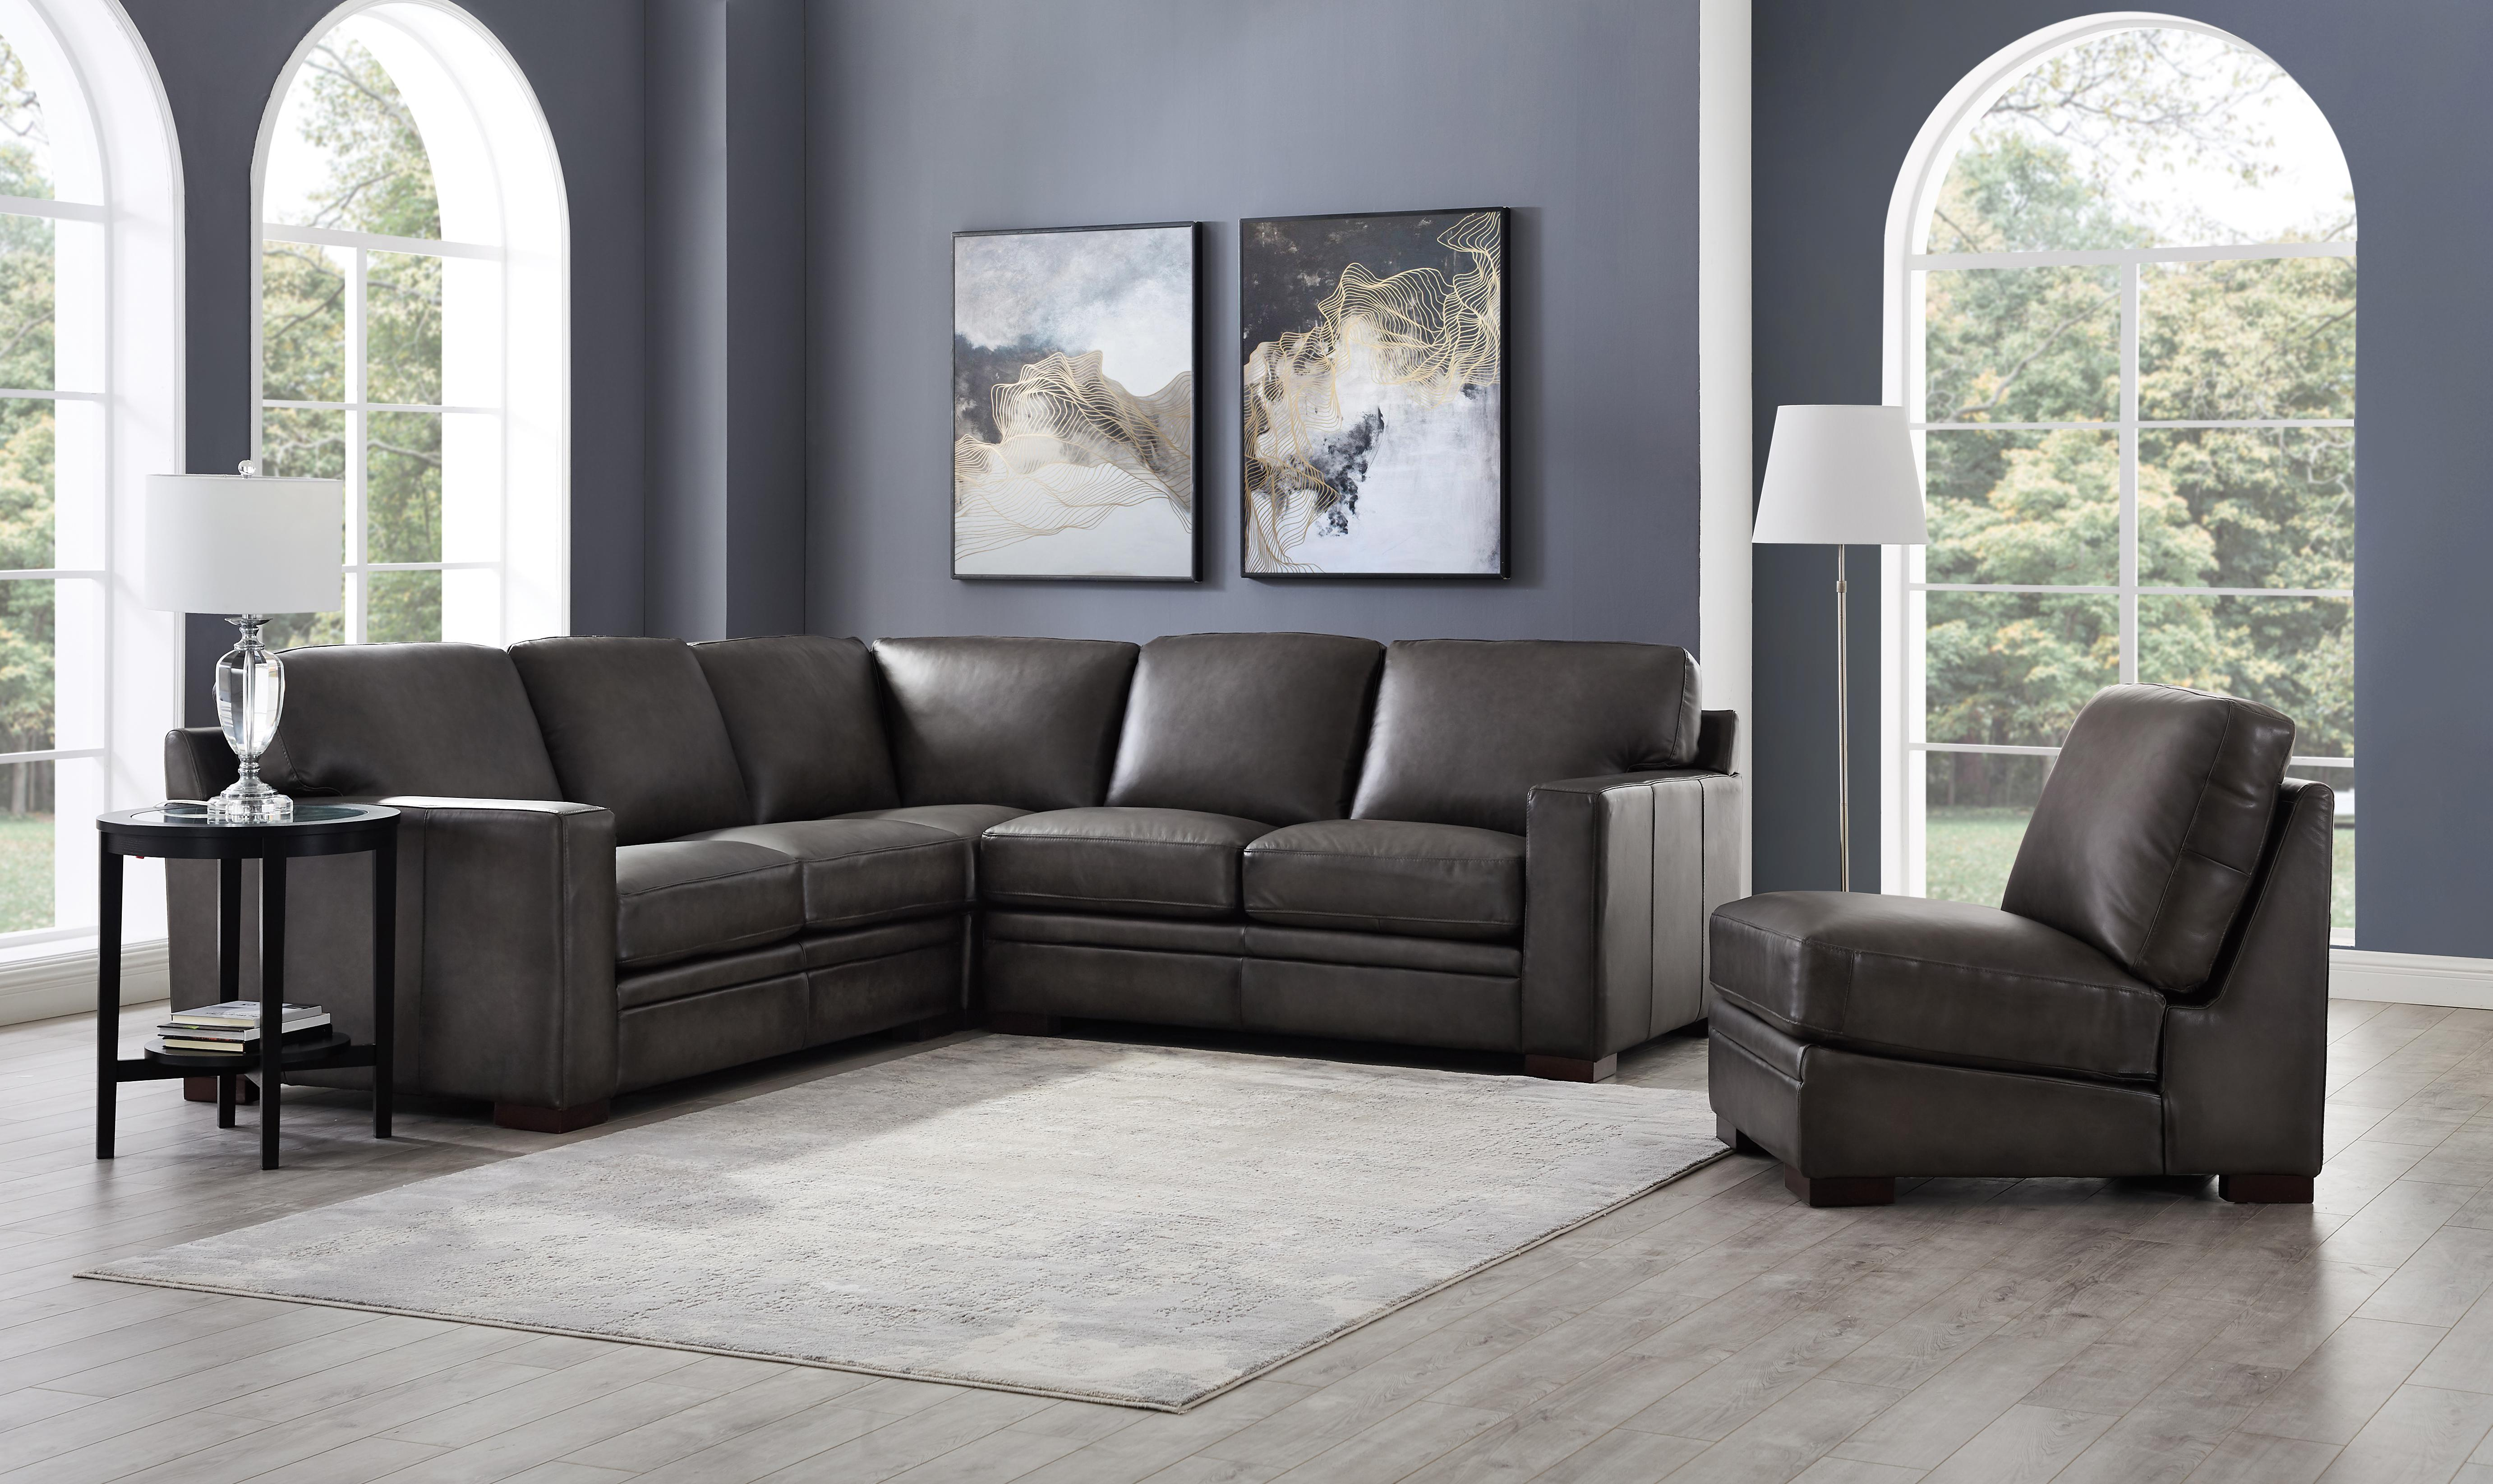 Fine Hydeline Dillon Gray Sectional And Chair Set The Classy Home Caraccident5 Cool Chair Designs And Ideas Caraccident5Info